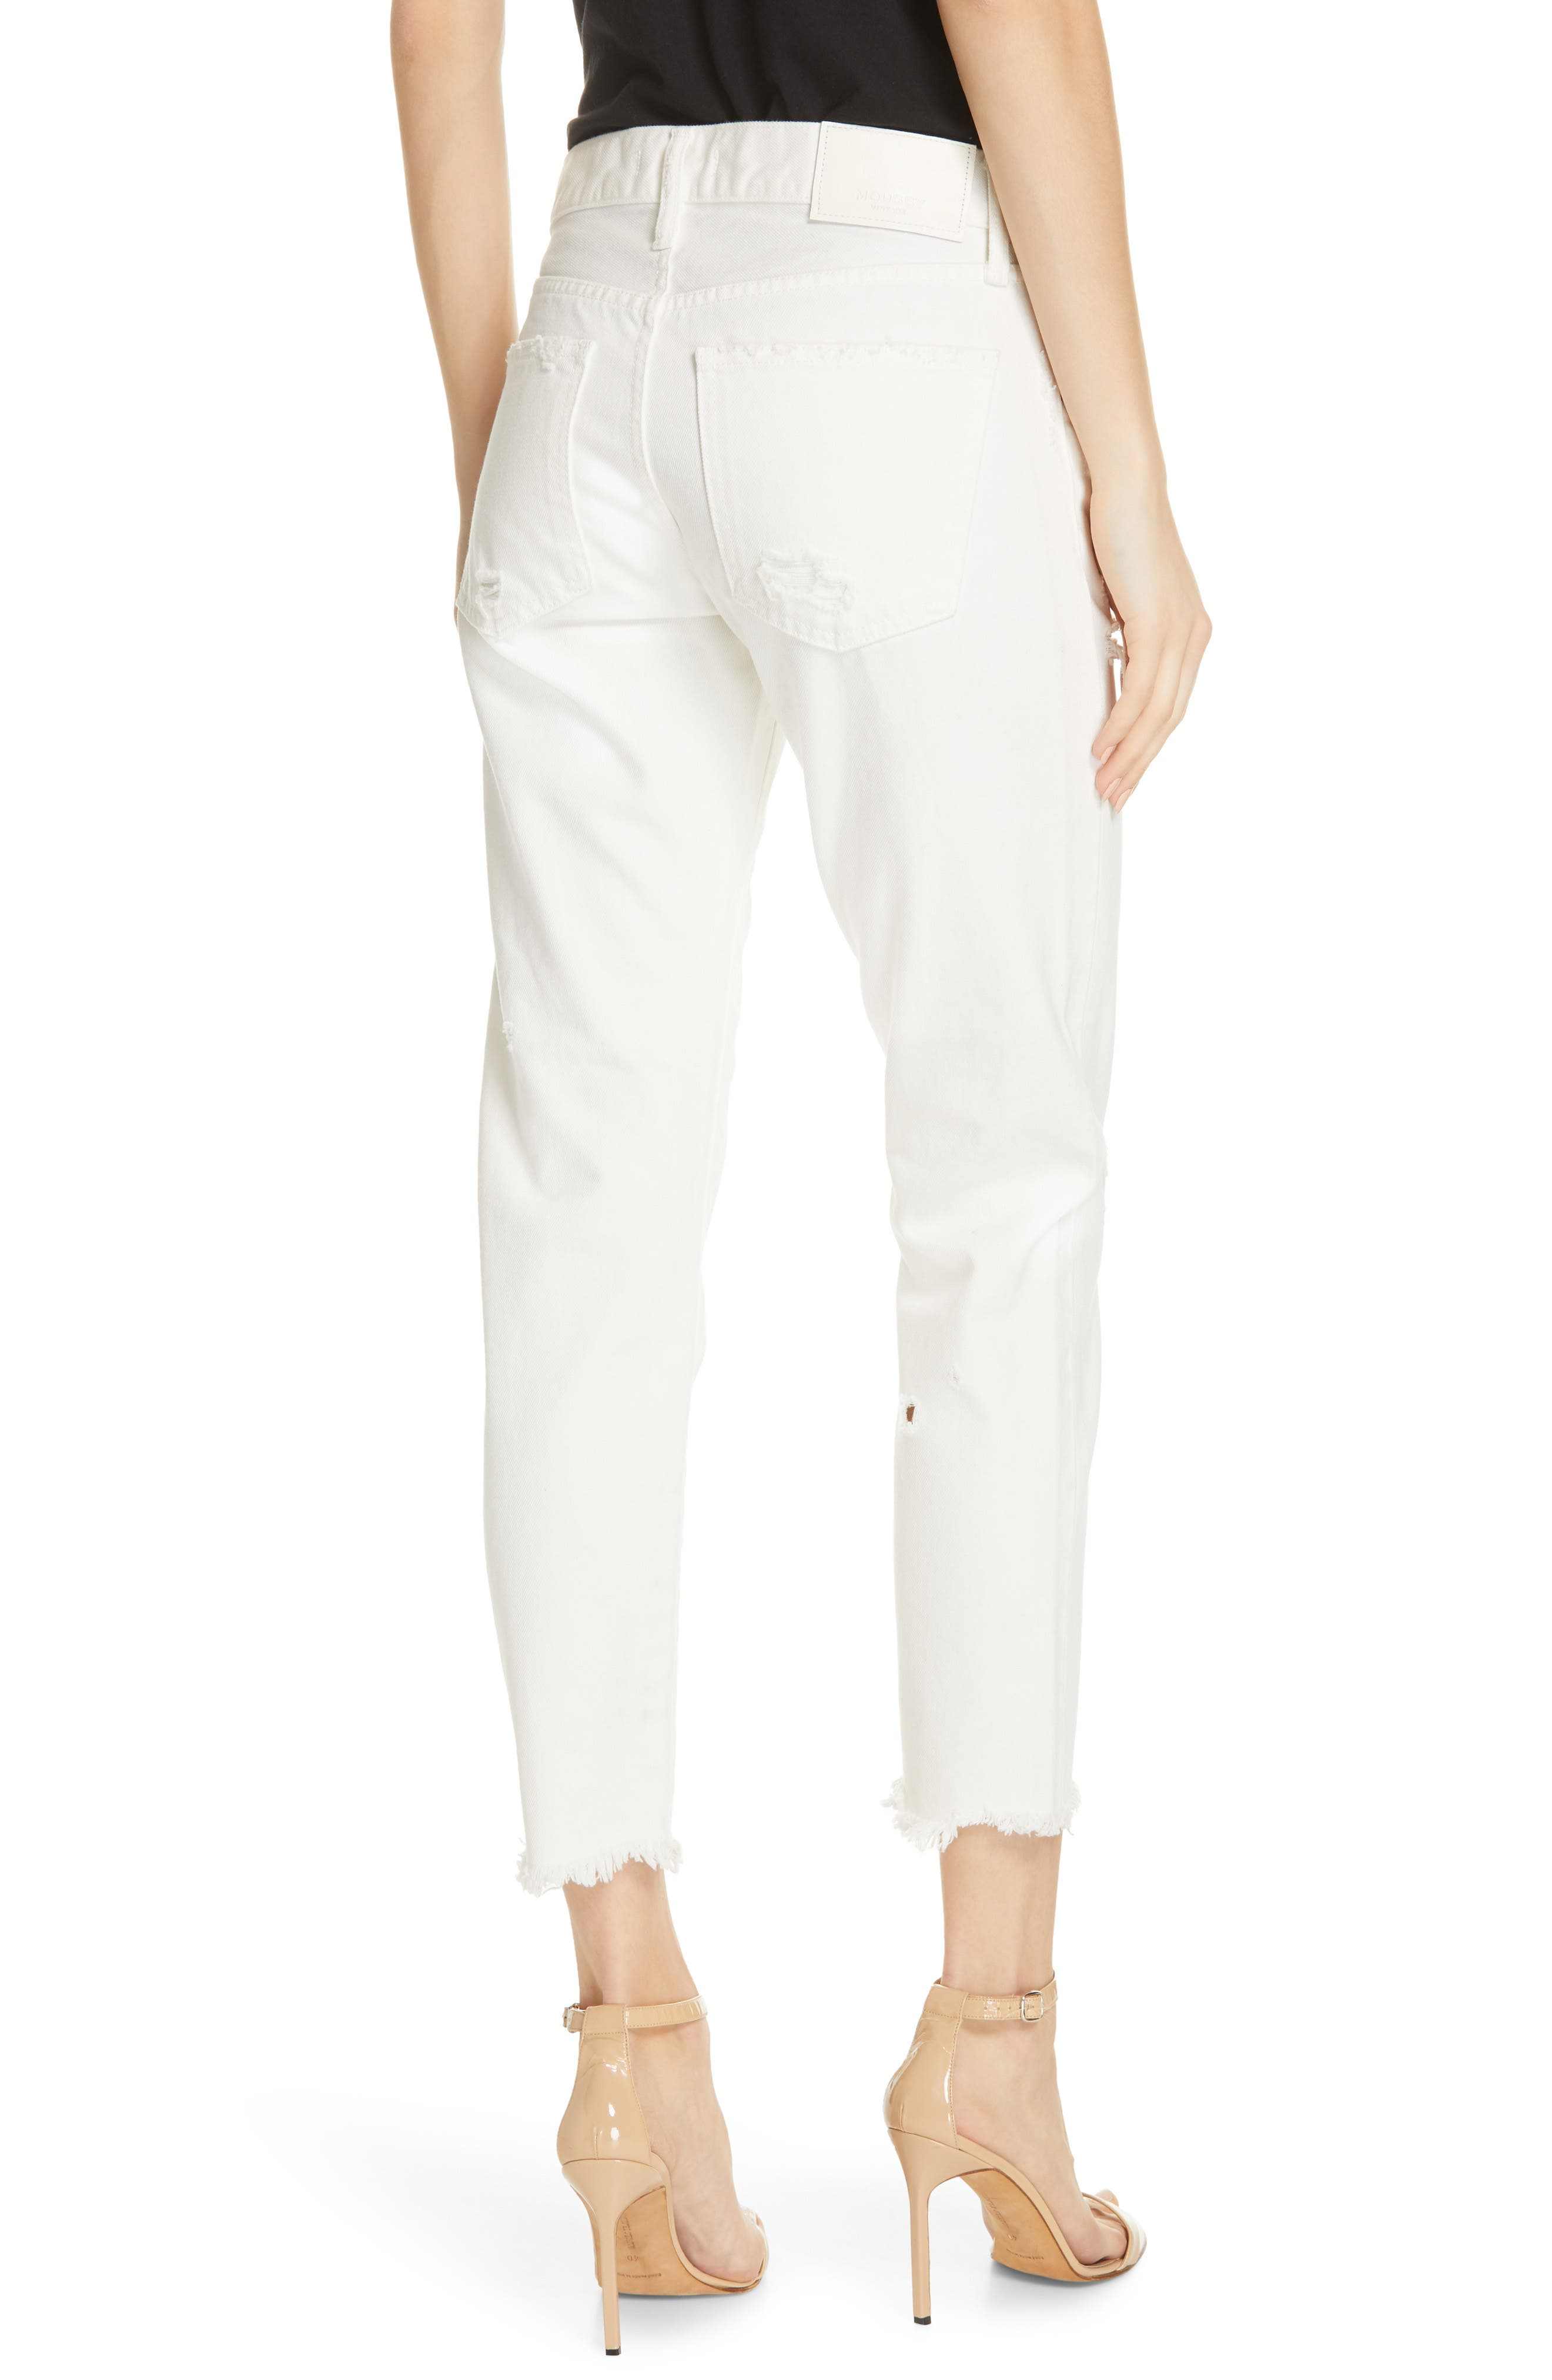 MOUSSY VINTAGE, Kelley Tapered Crop Jeans, Alternate thumbnail 2, color, WHITE